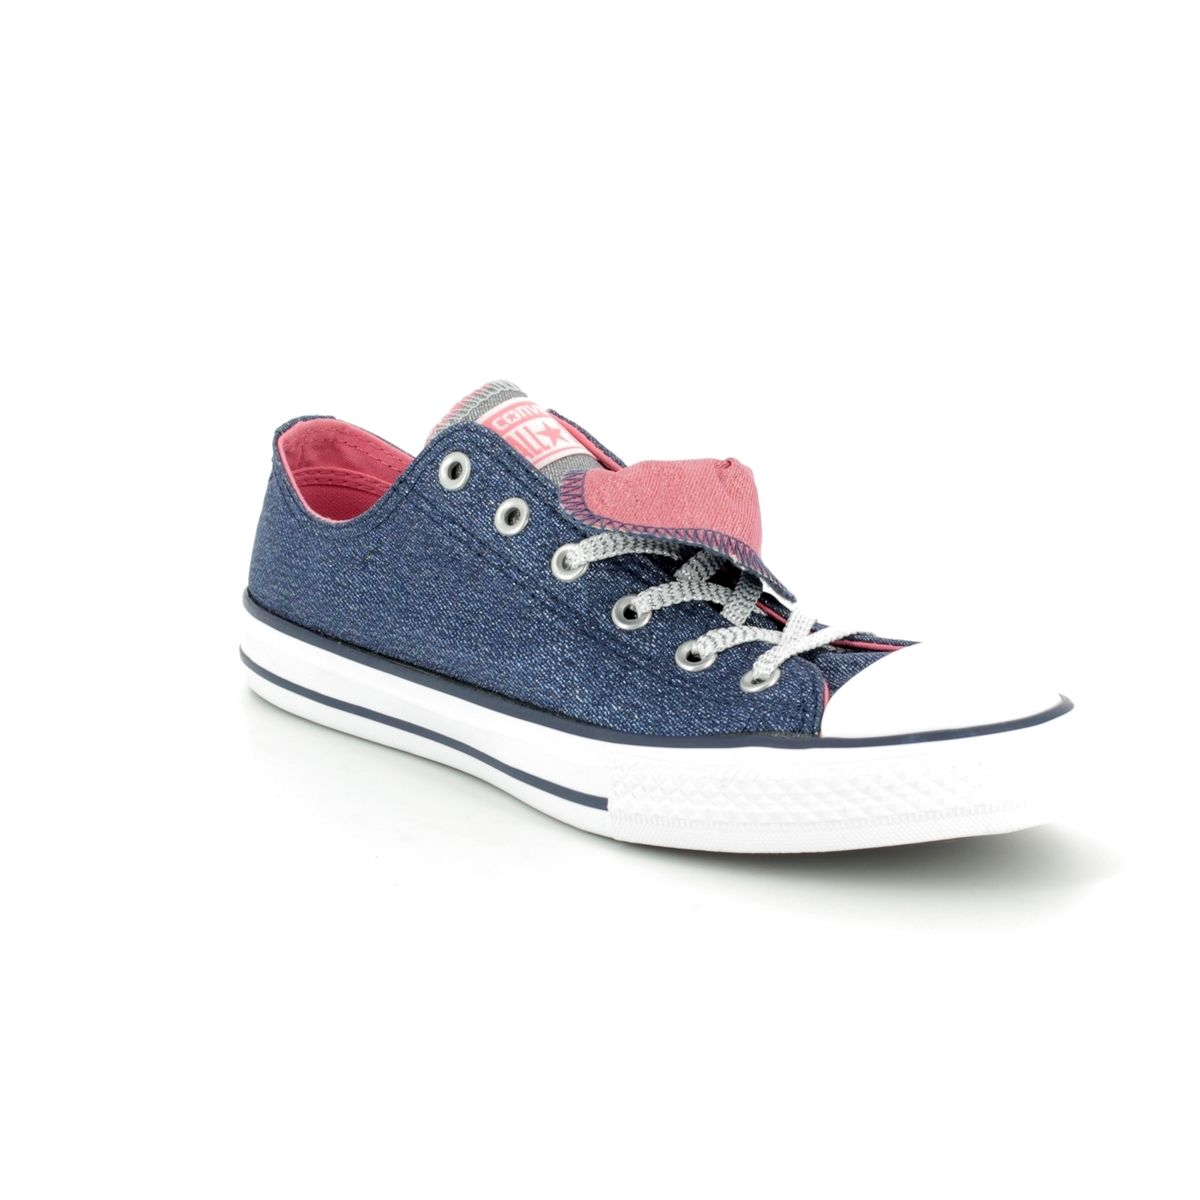 98a8ceb44e1583 Converse Trainers - Navy - 658112C Chuck Taylor All Star Double Tongue OX